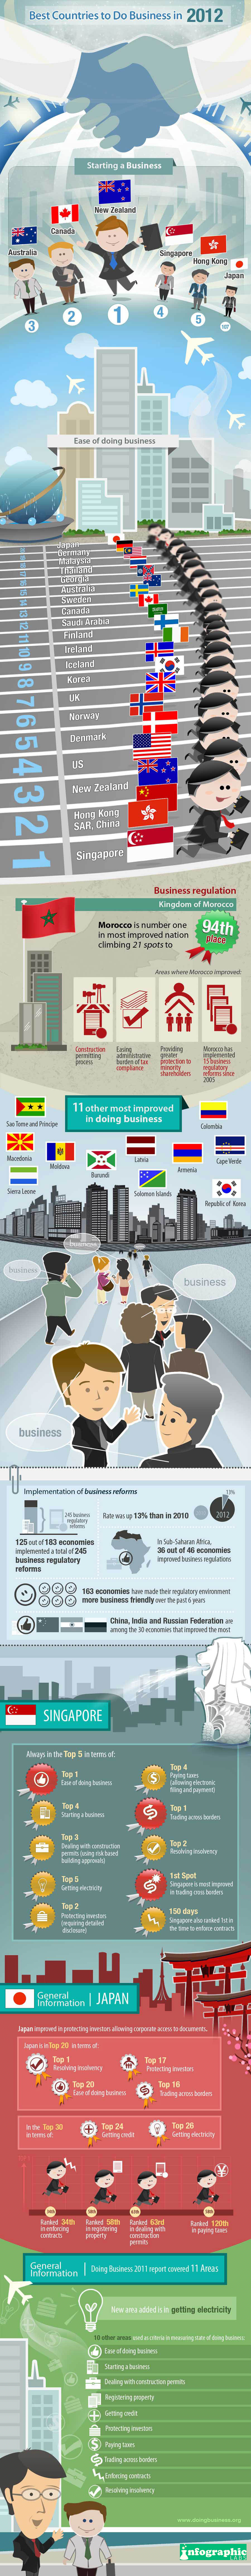 Discover the best countries to do business in 2012